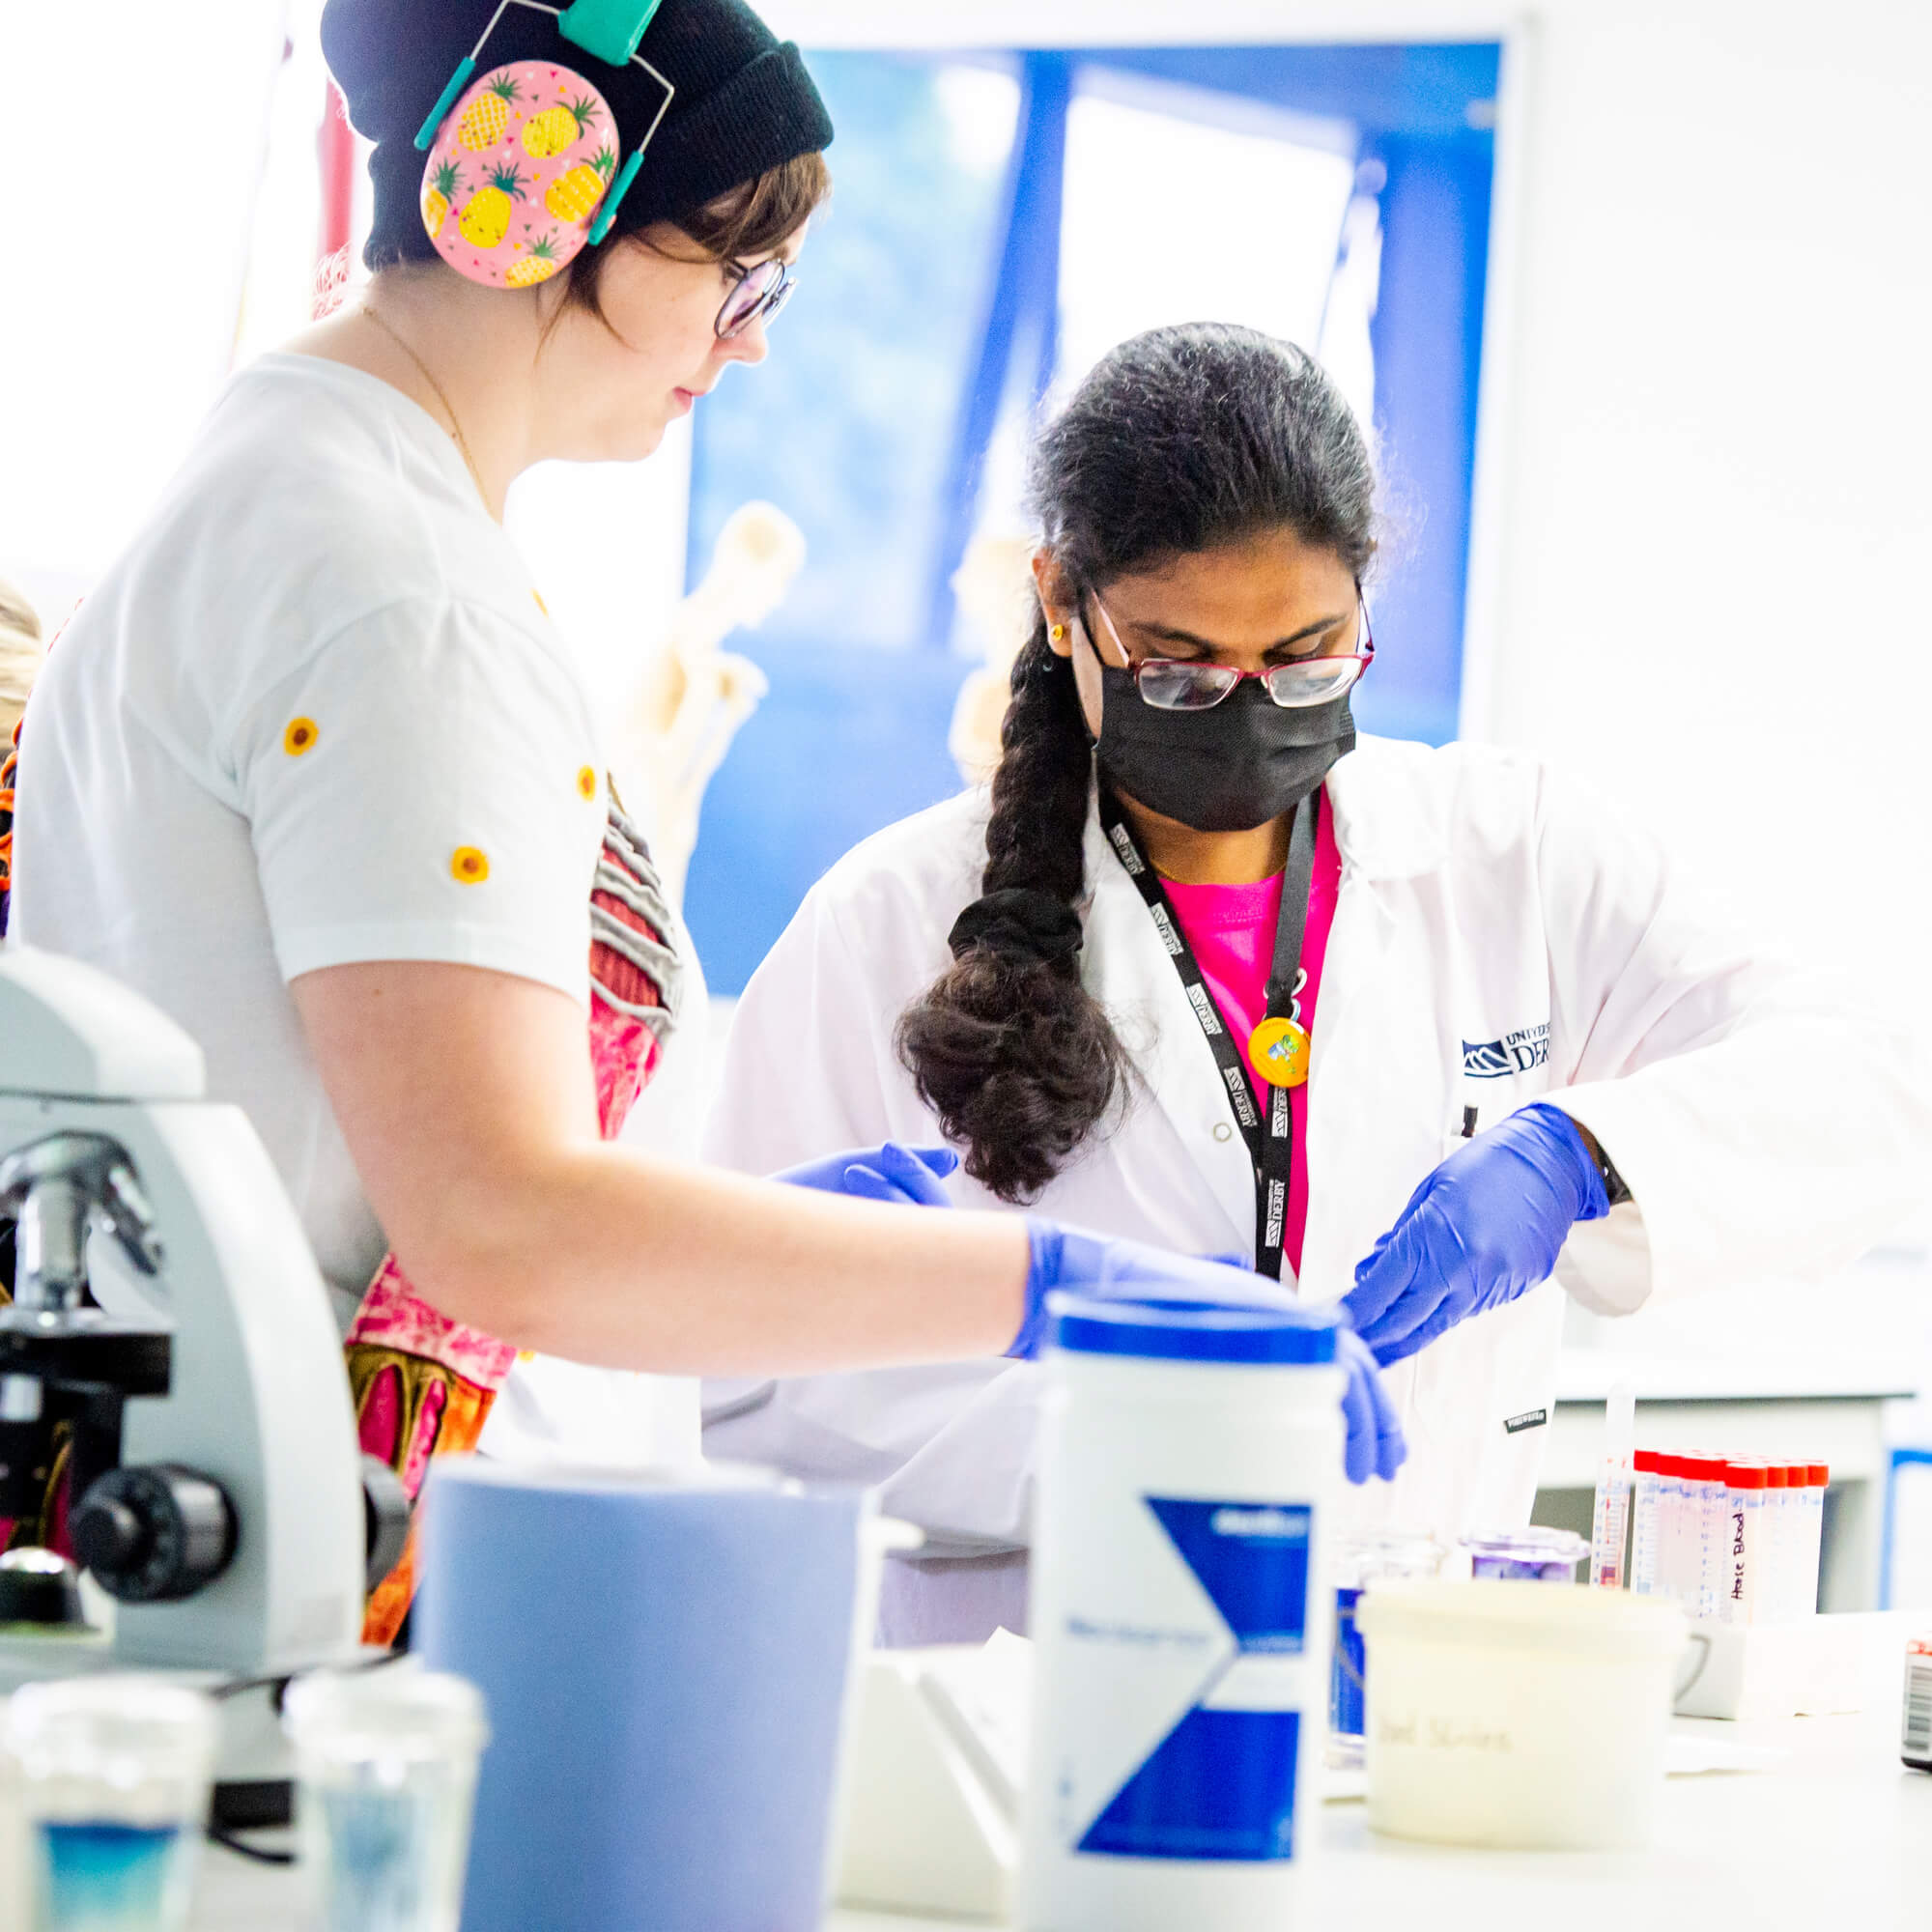 A student pouring liquids in a science lab with a parent.